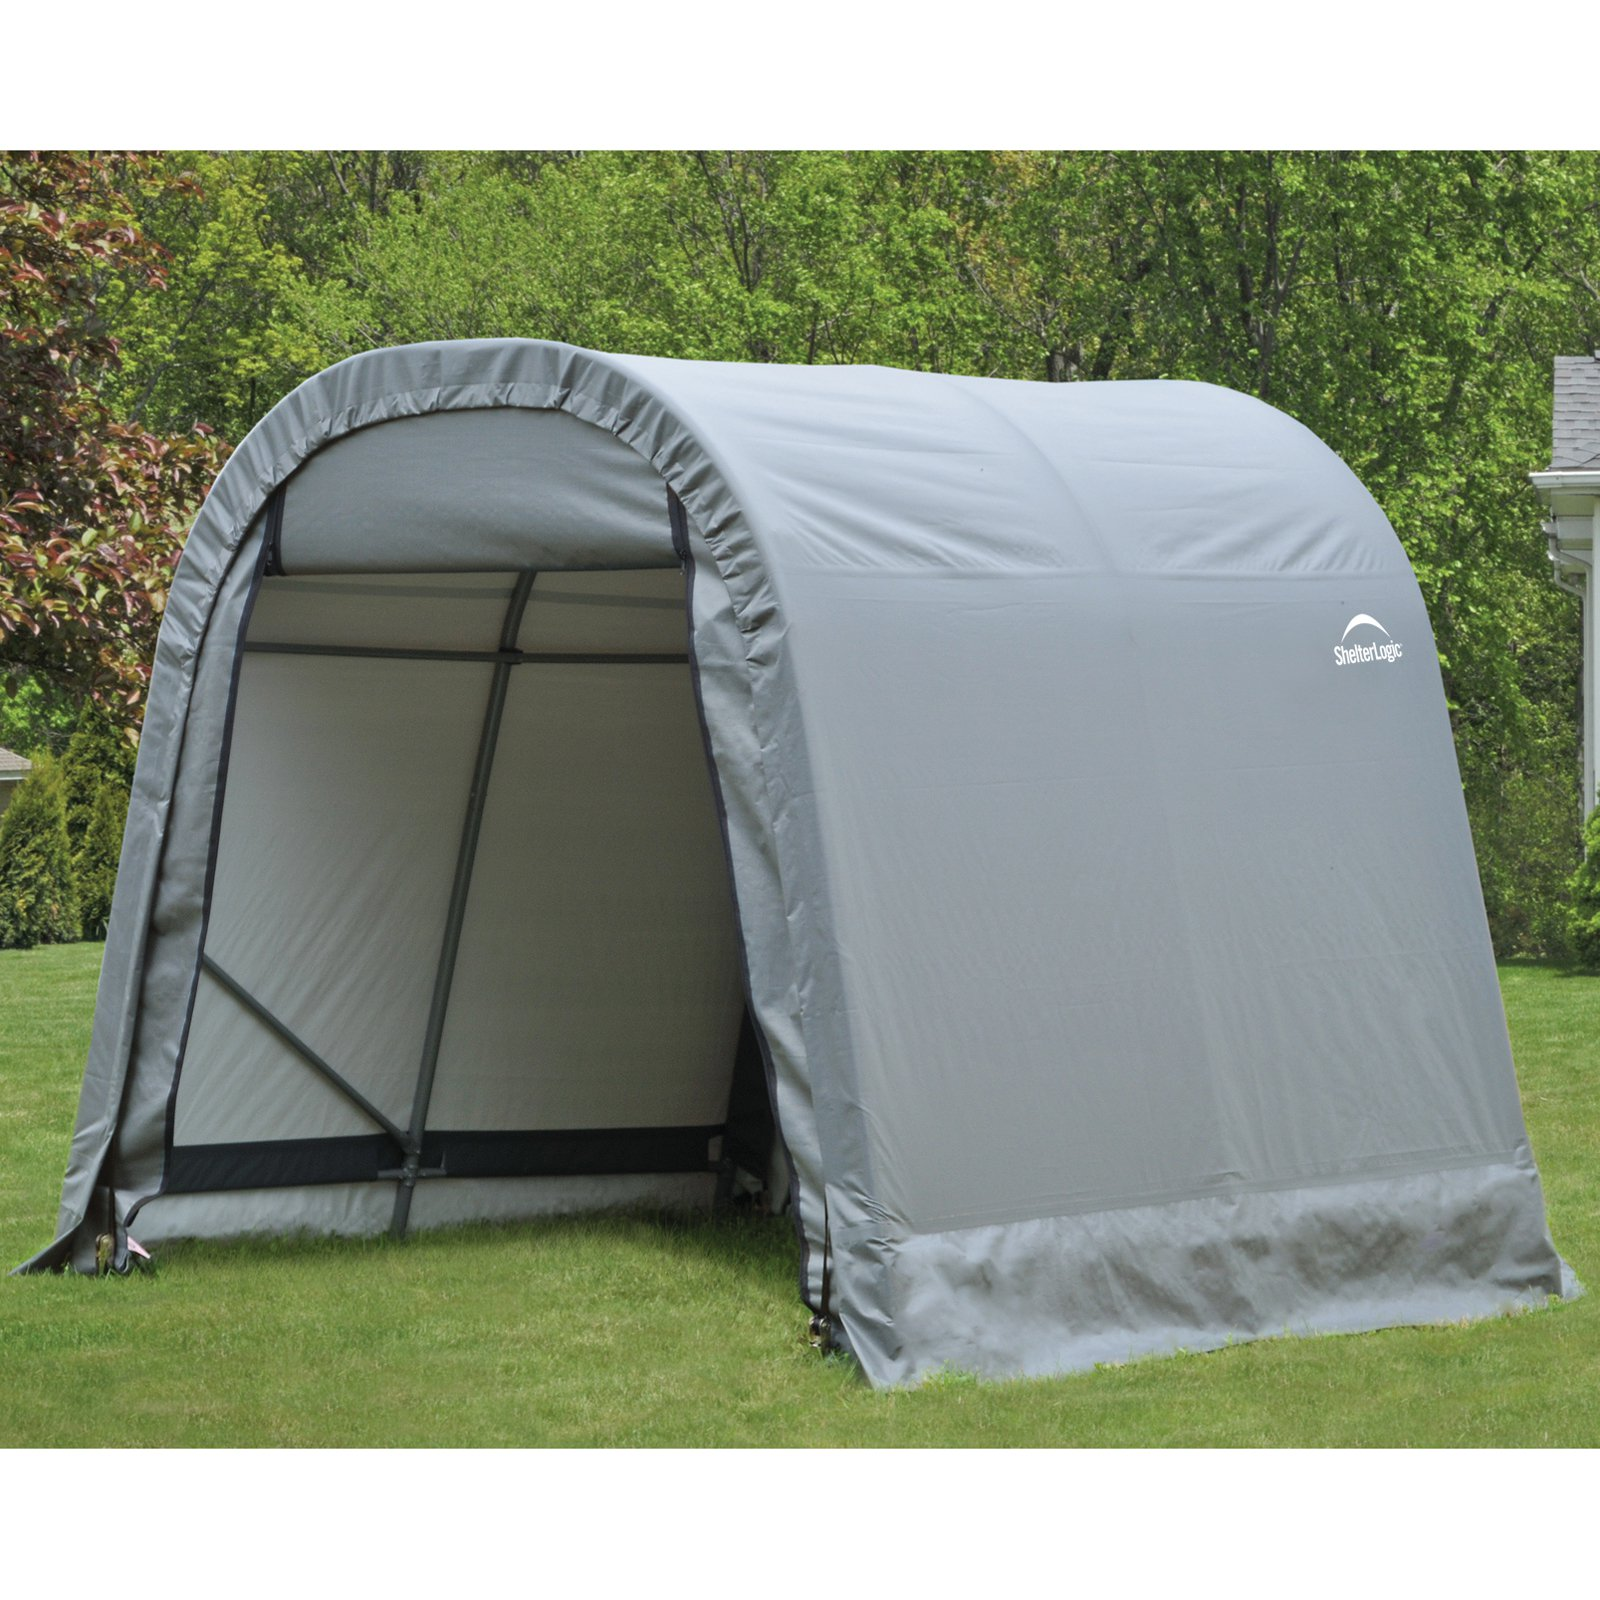 8' x 8' x 8' Round Style Shelter, Gray